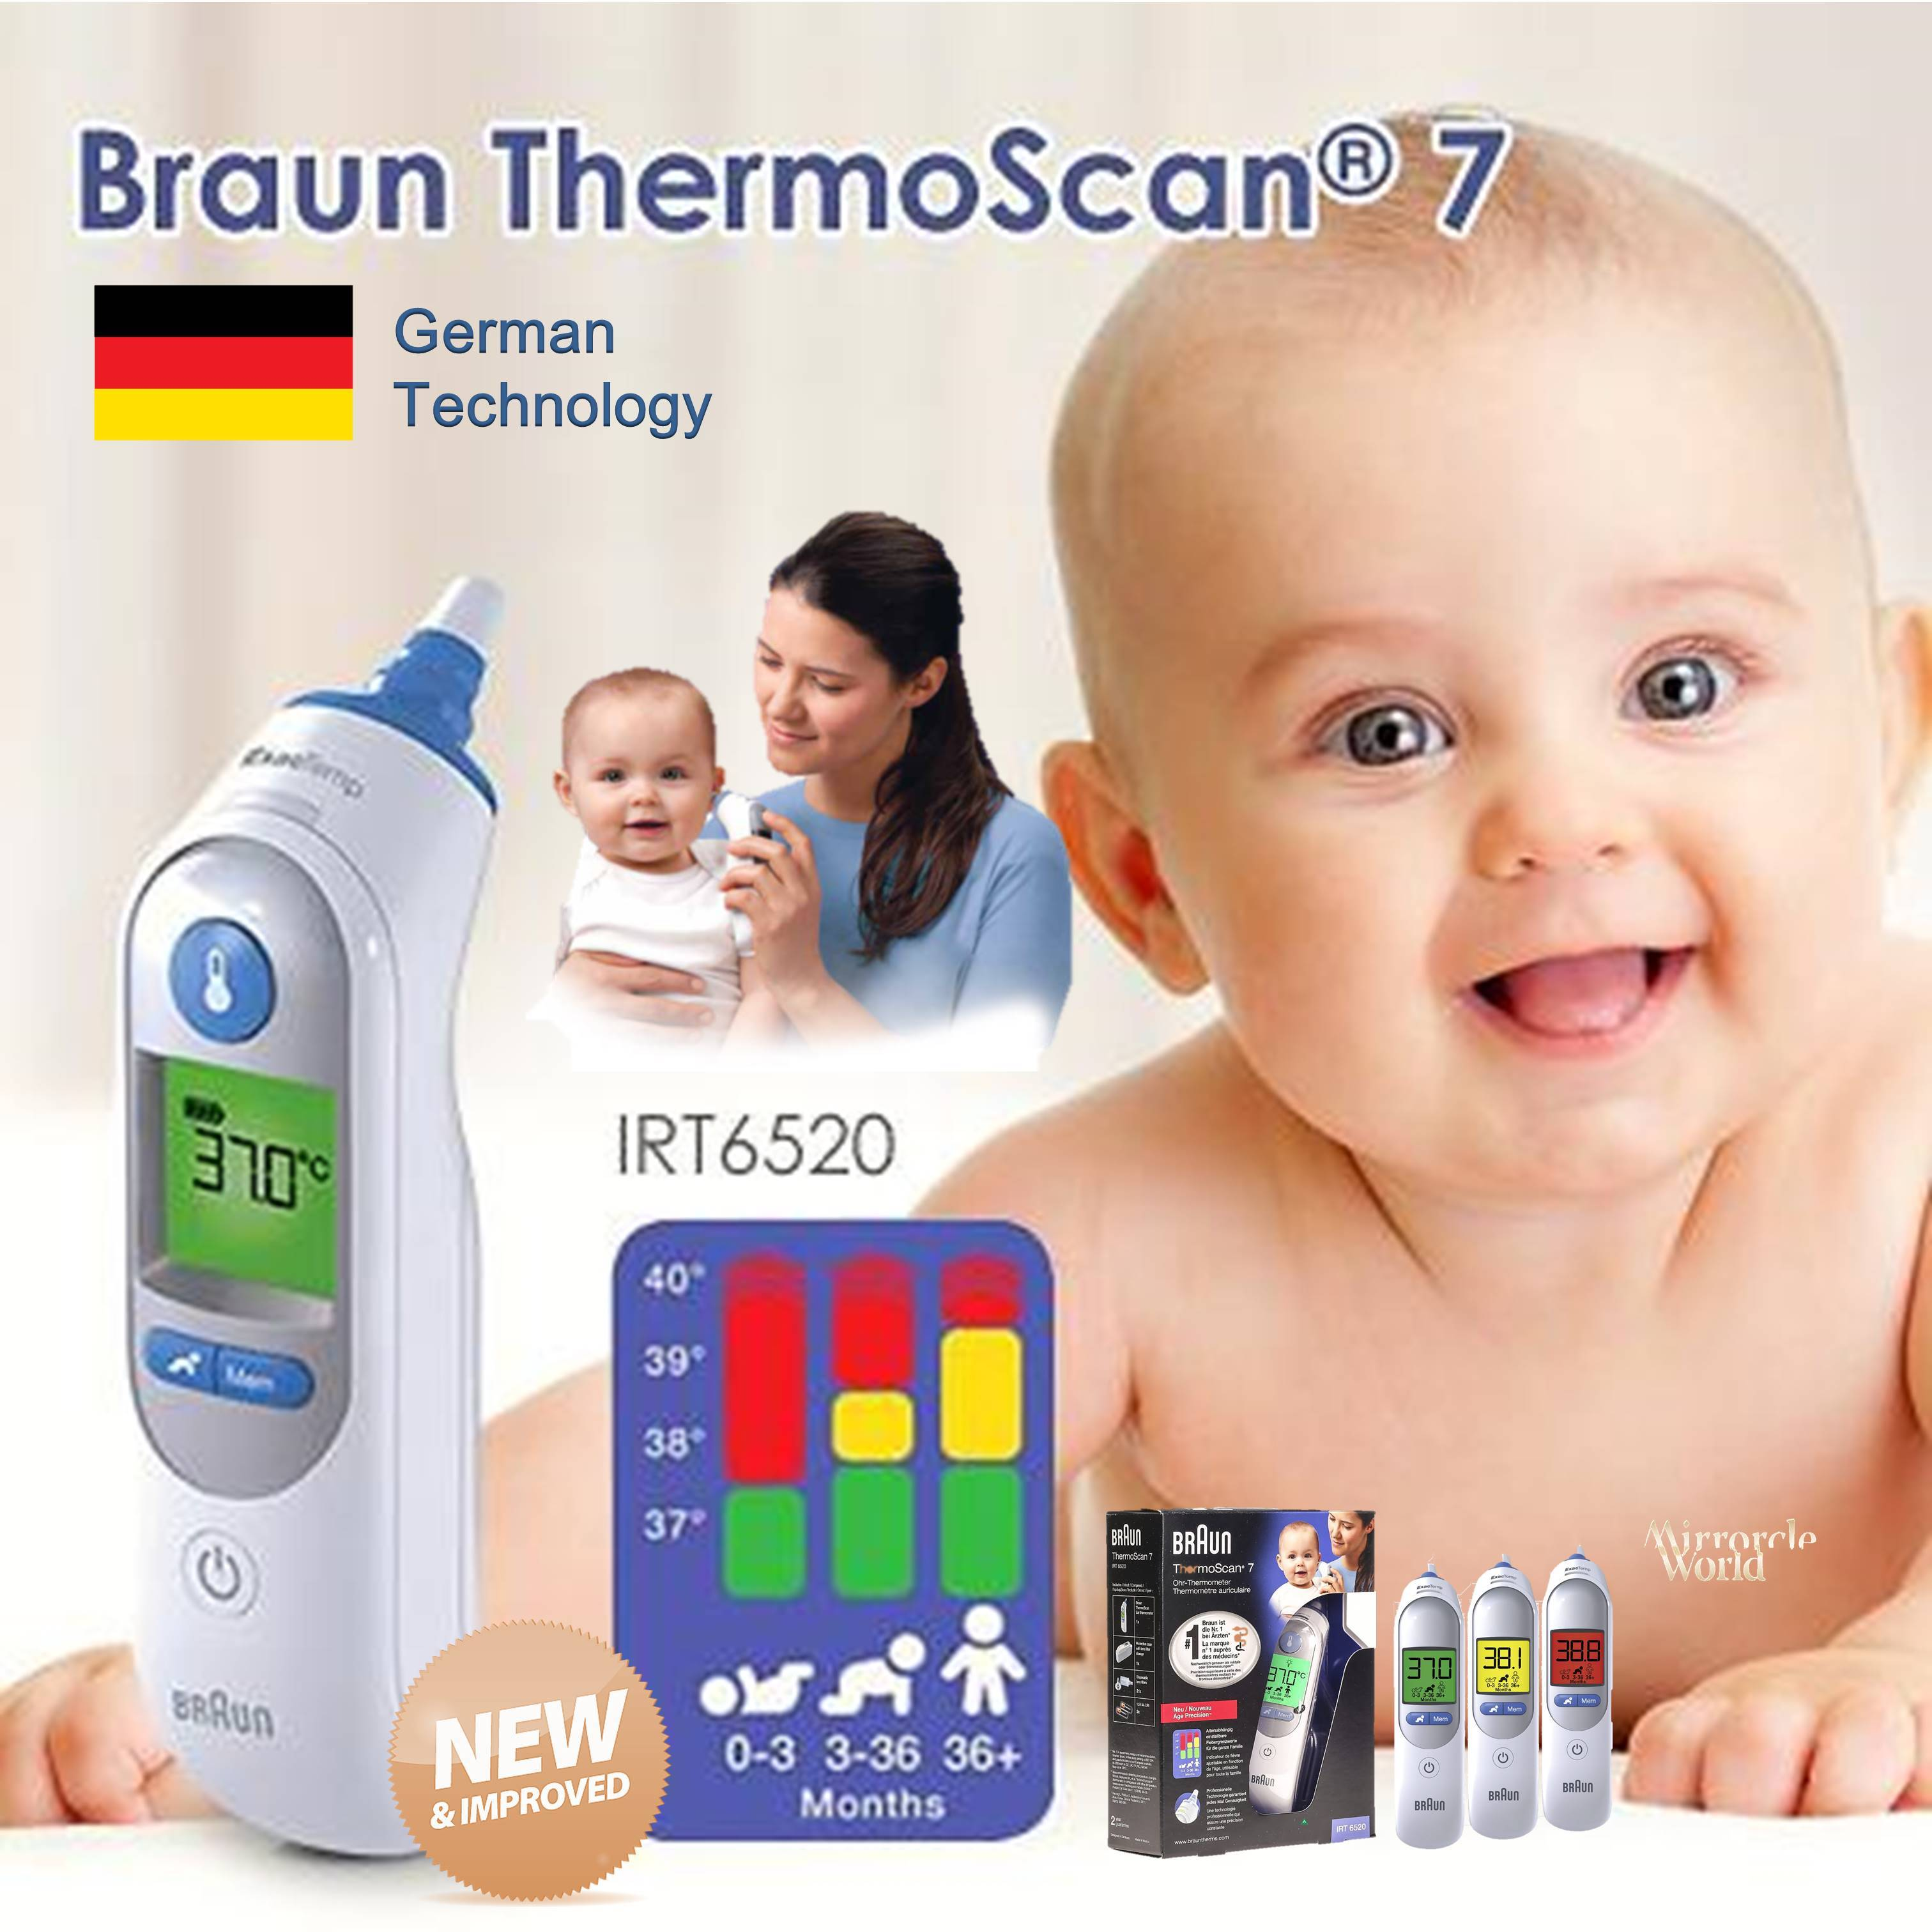 Coupon For Braun Thermoscan Ear Thermometer Nhl 13 Hut Deals